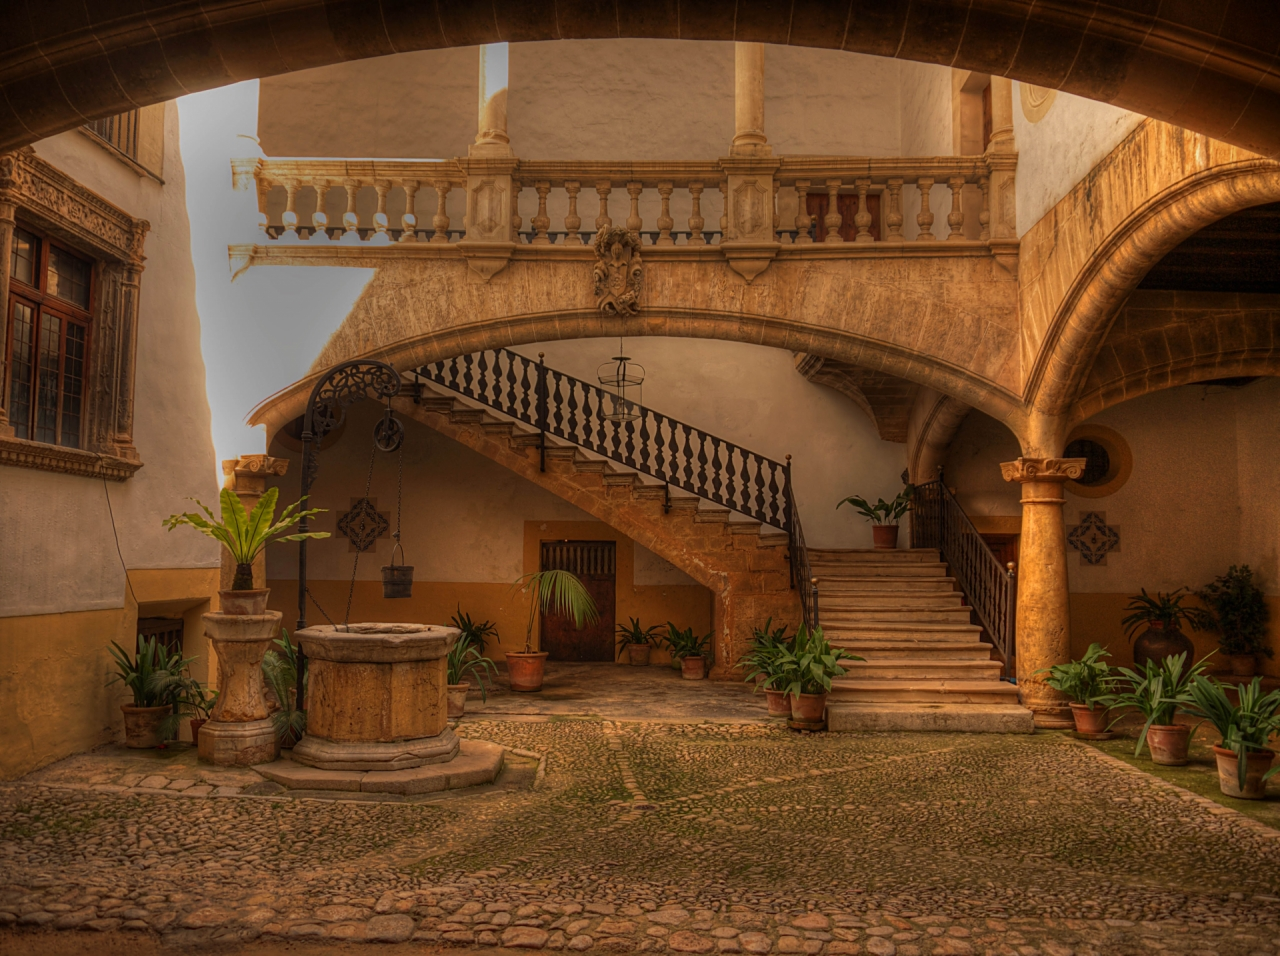 Old staircase in Palma de Mallorca, Spain